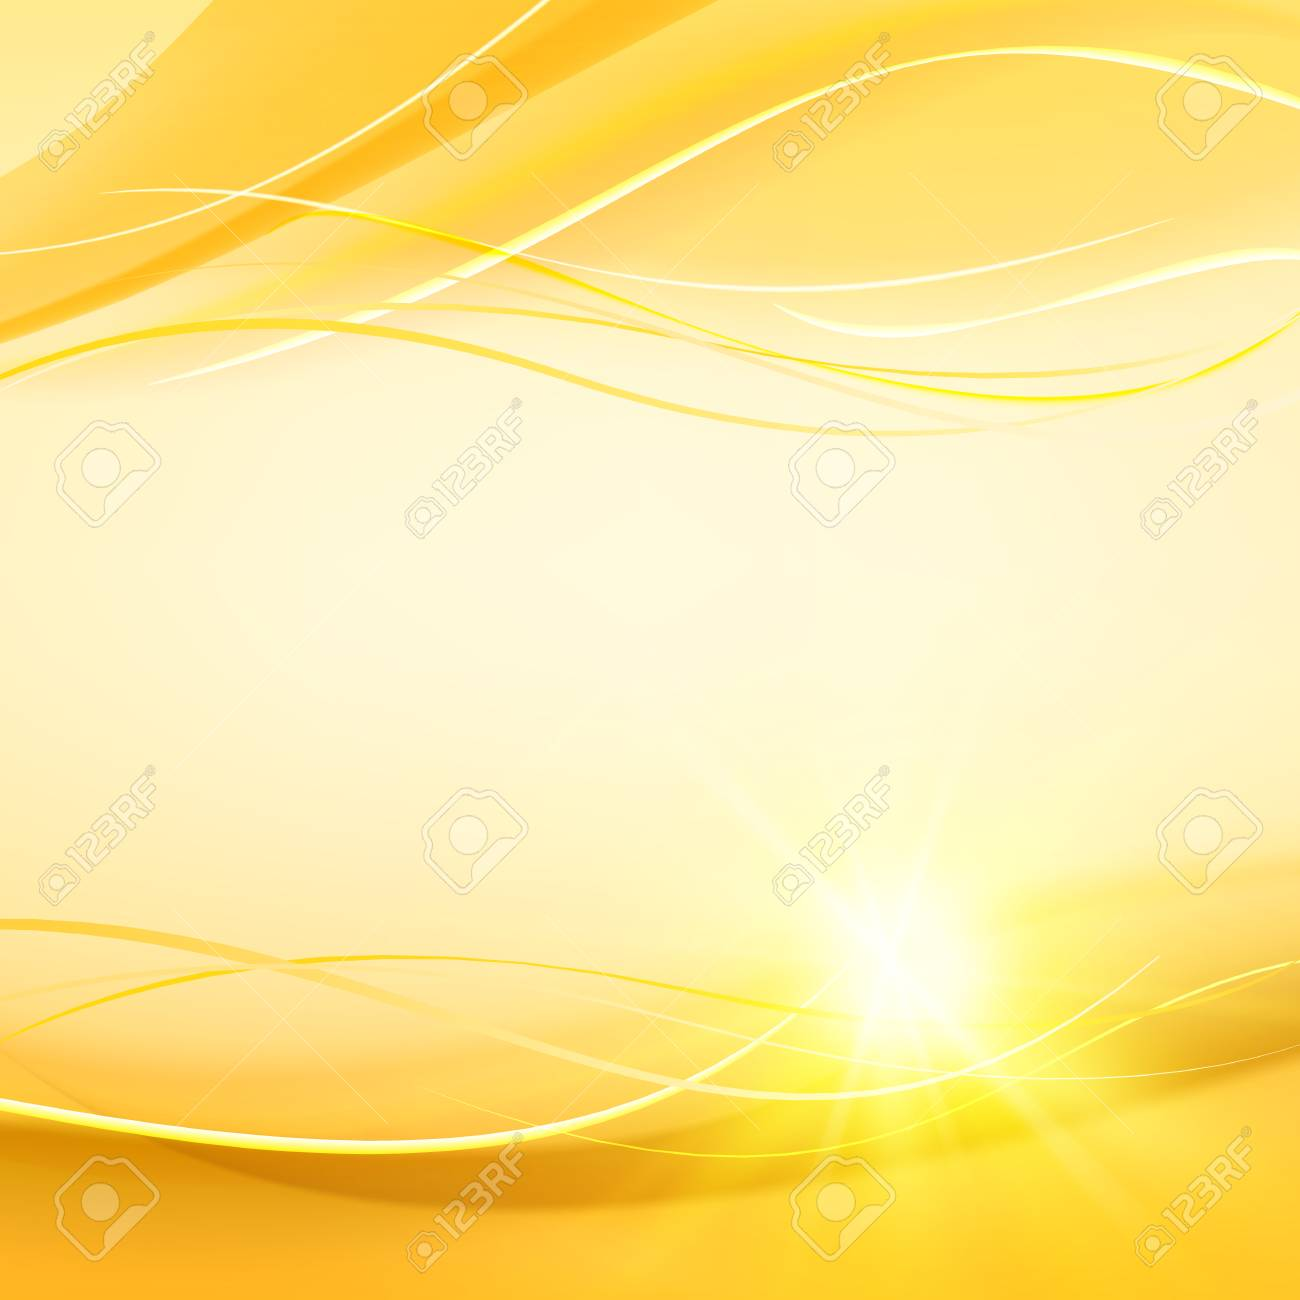 Futuristic Background Abstract Smooth Yellow Lines Over Orange Royalty Free Cliparts Vectors And Stock Illustration Image 96708214